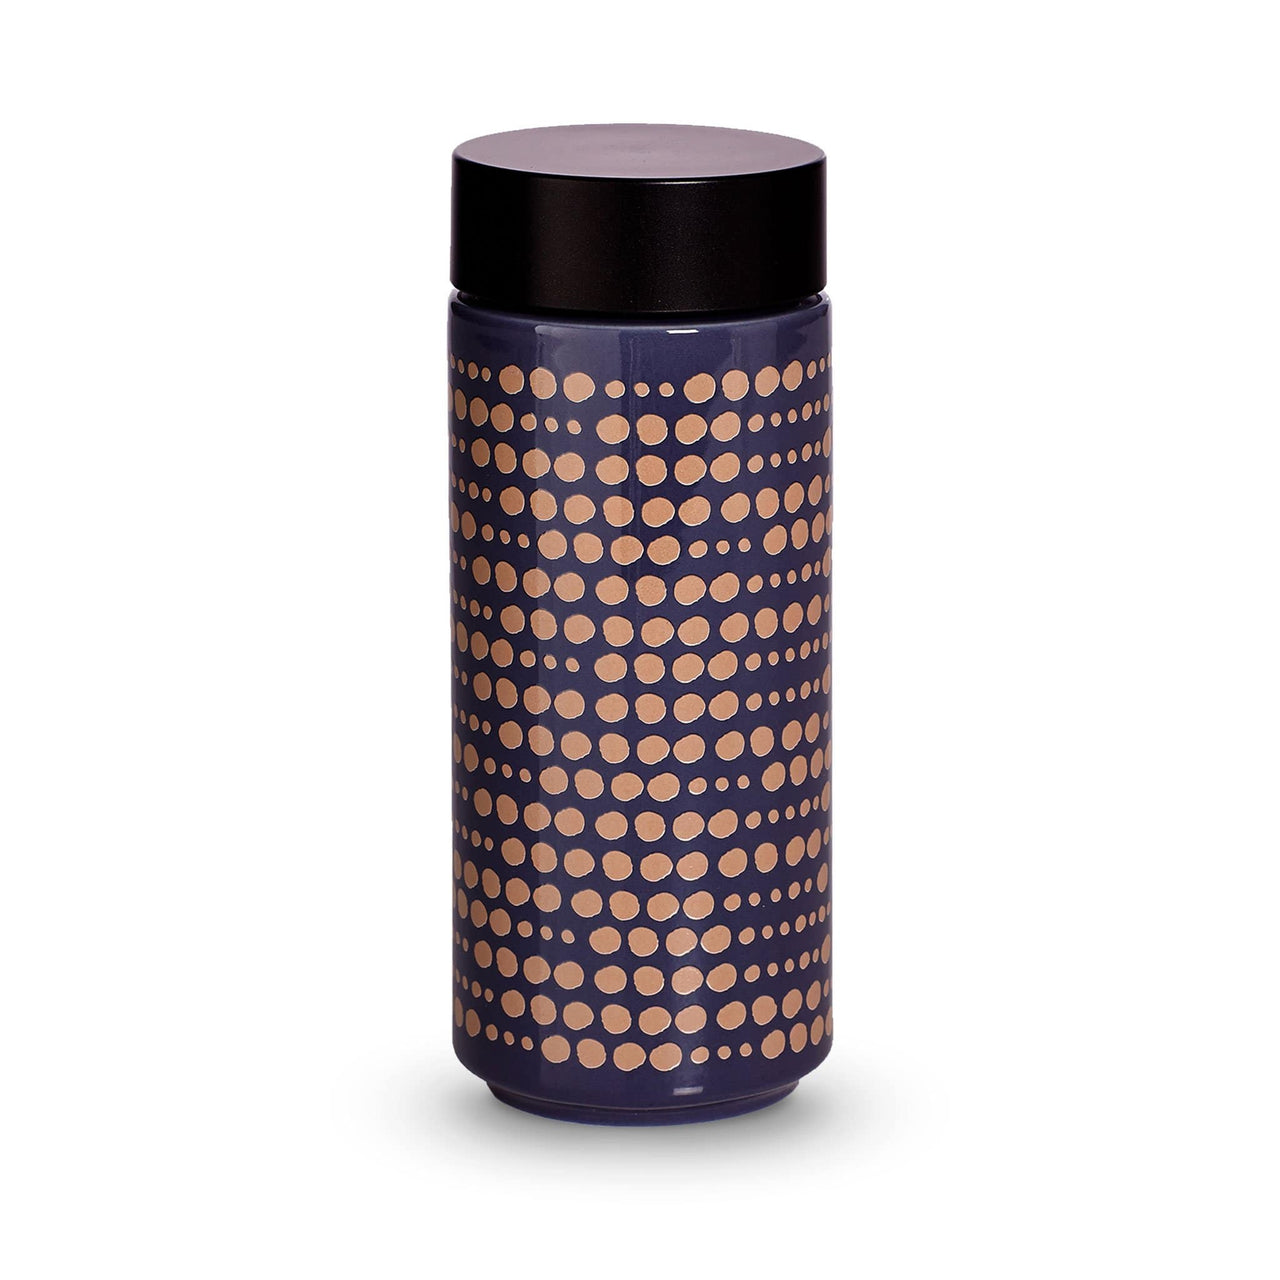 Acera Liven Flasks & Water Bottles Sparkle Star Chess Ceramic Tumbler